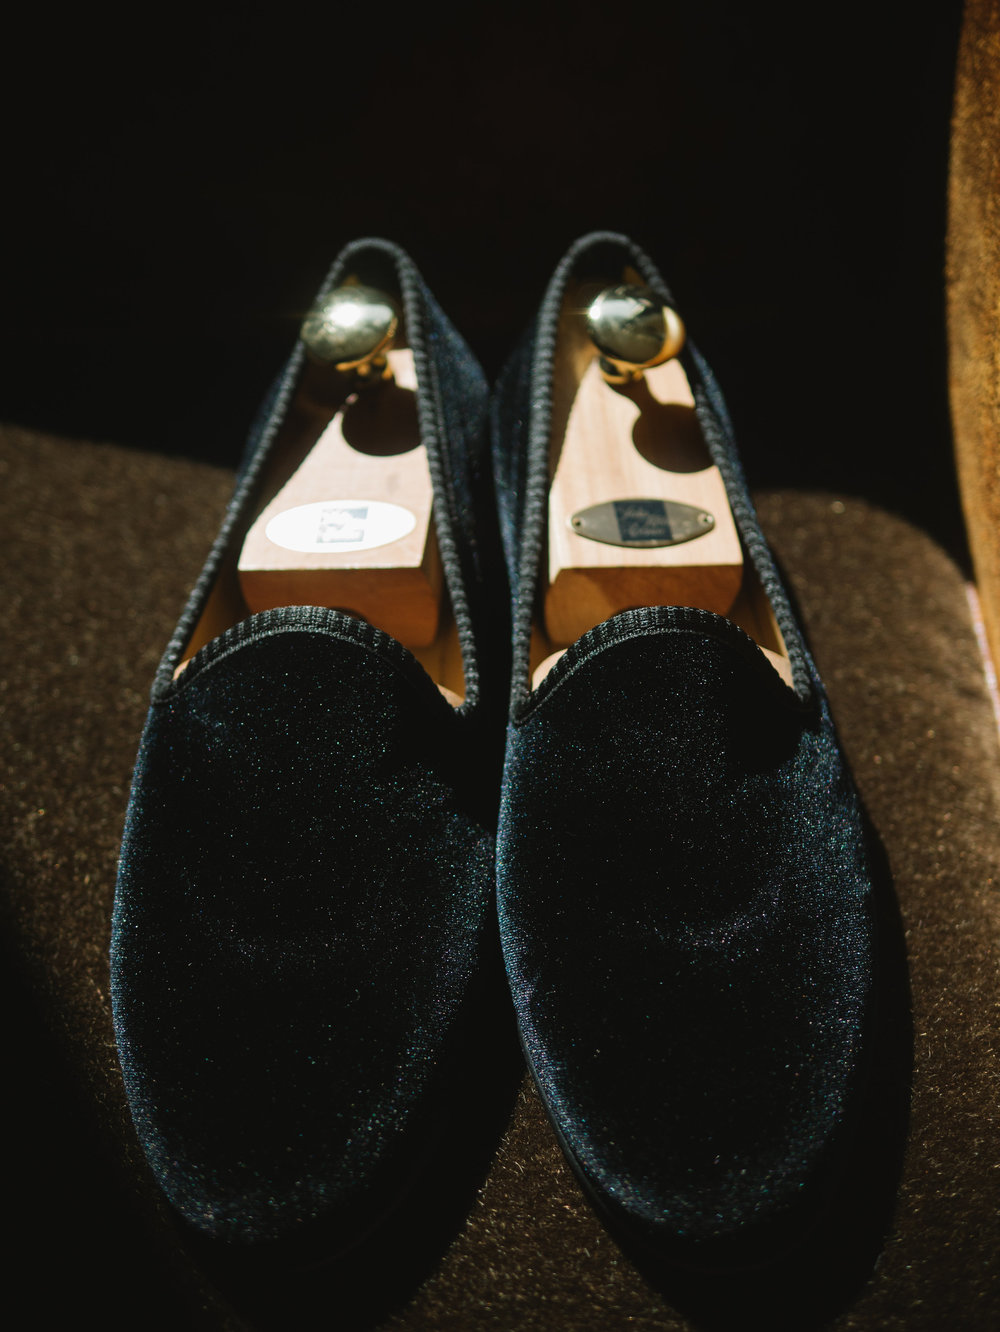 GROOM'S SUEDE WEDDING SHOES